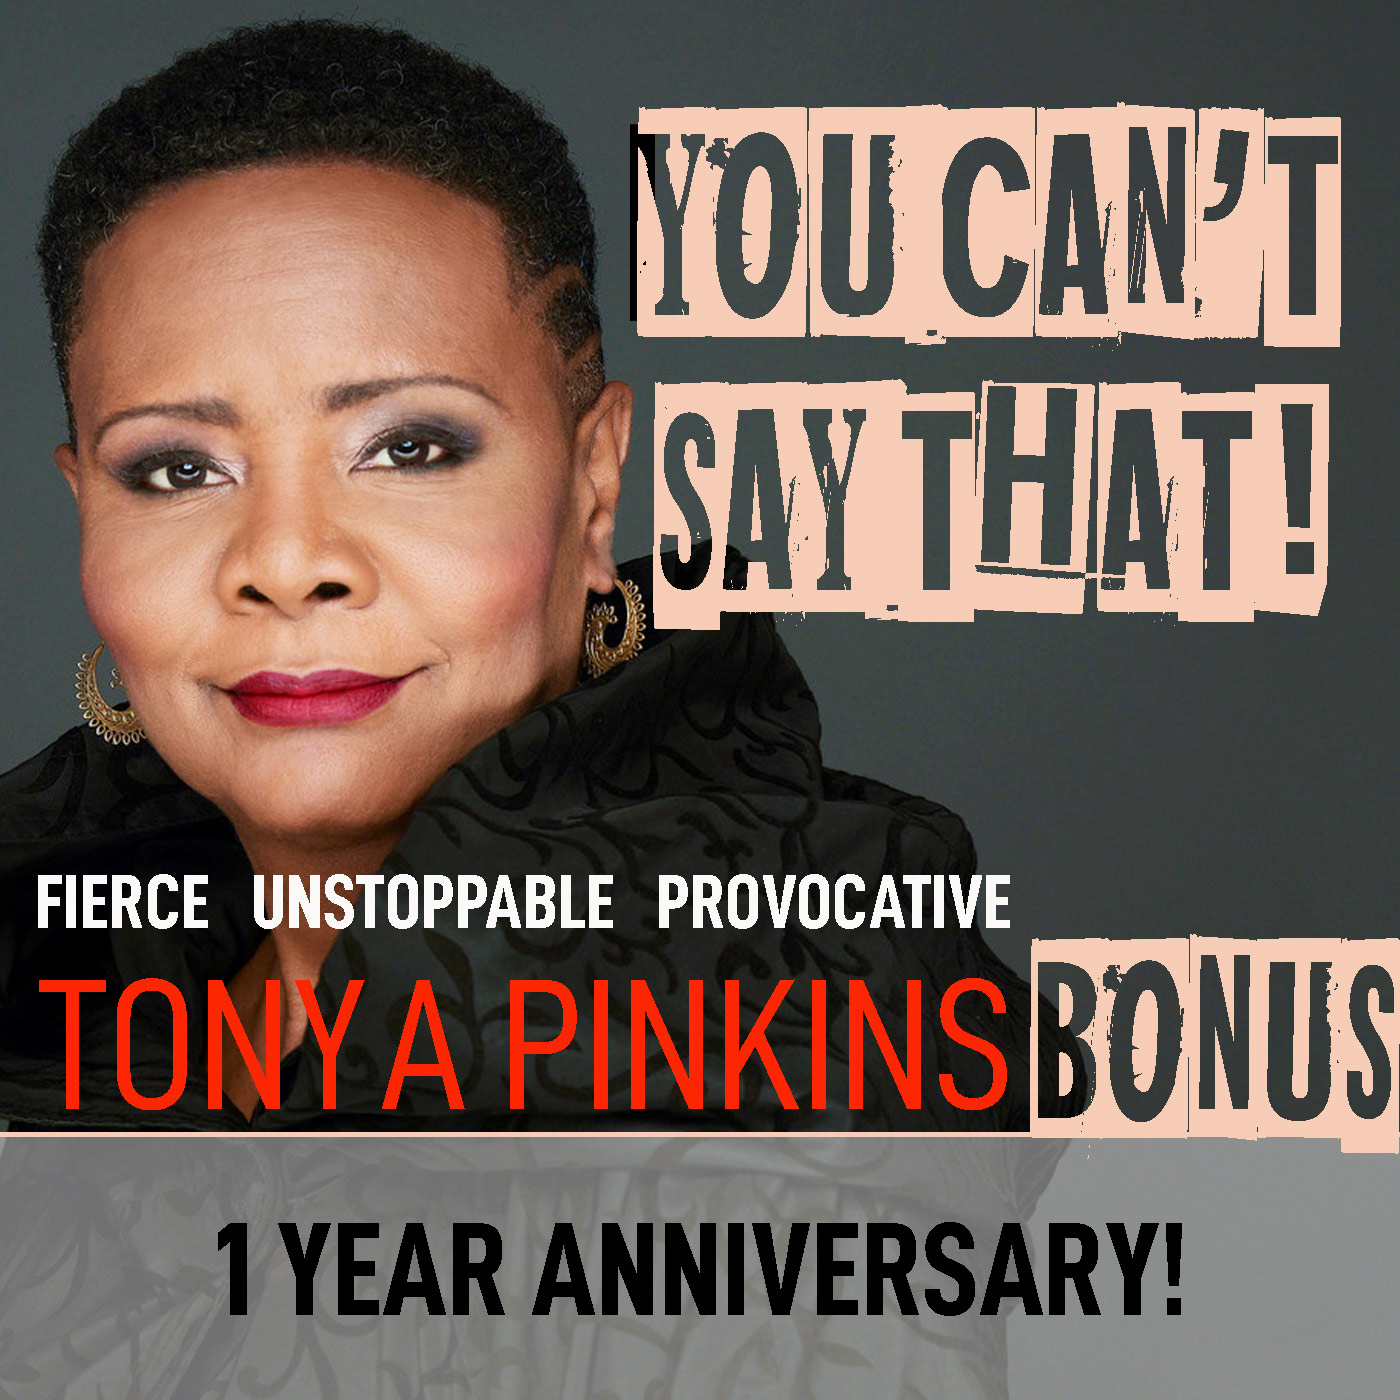 BONUS - Celebrating ONE YEAR of You Can't Say That!